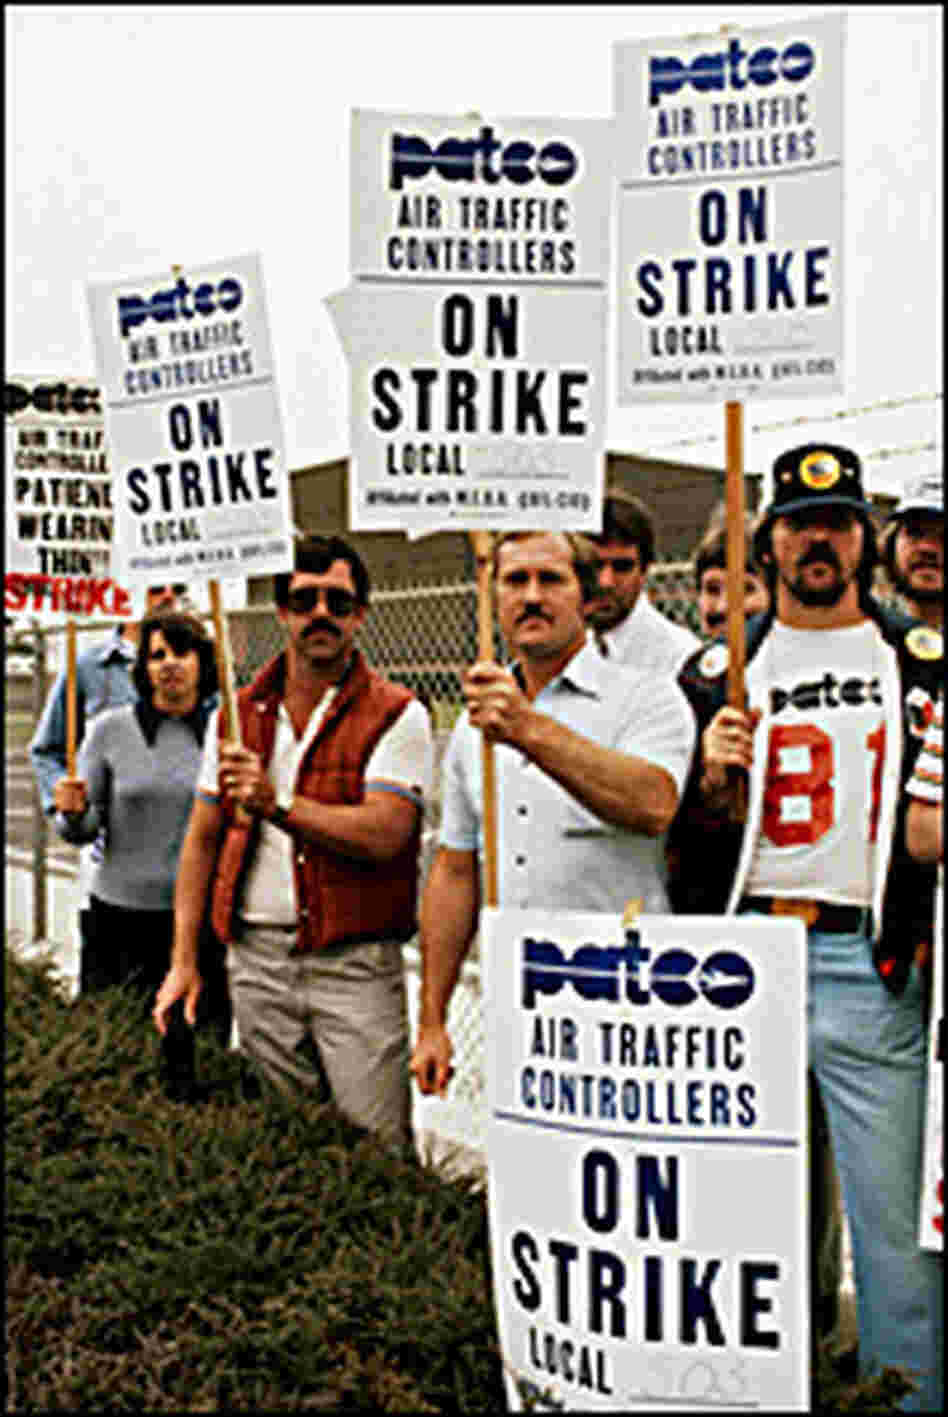 Striking Air-traffic Controllers